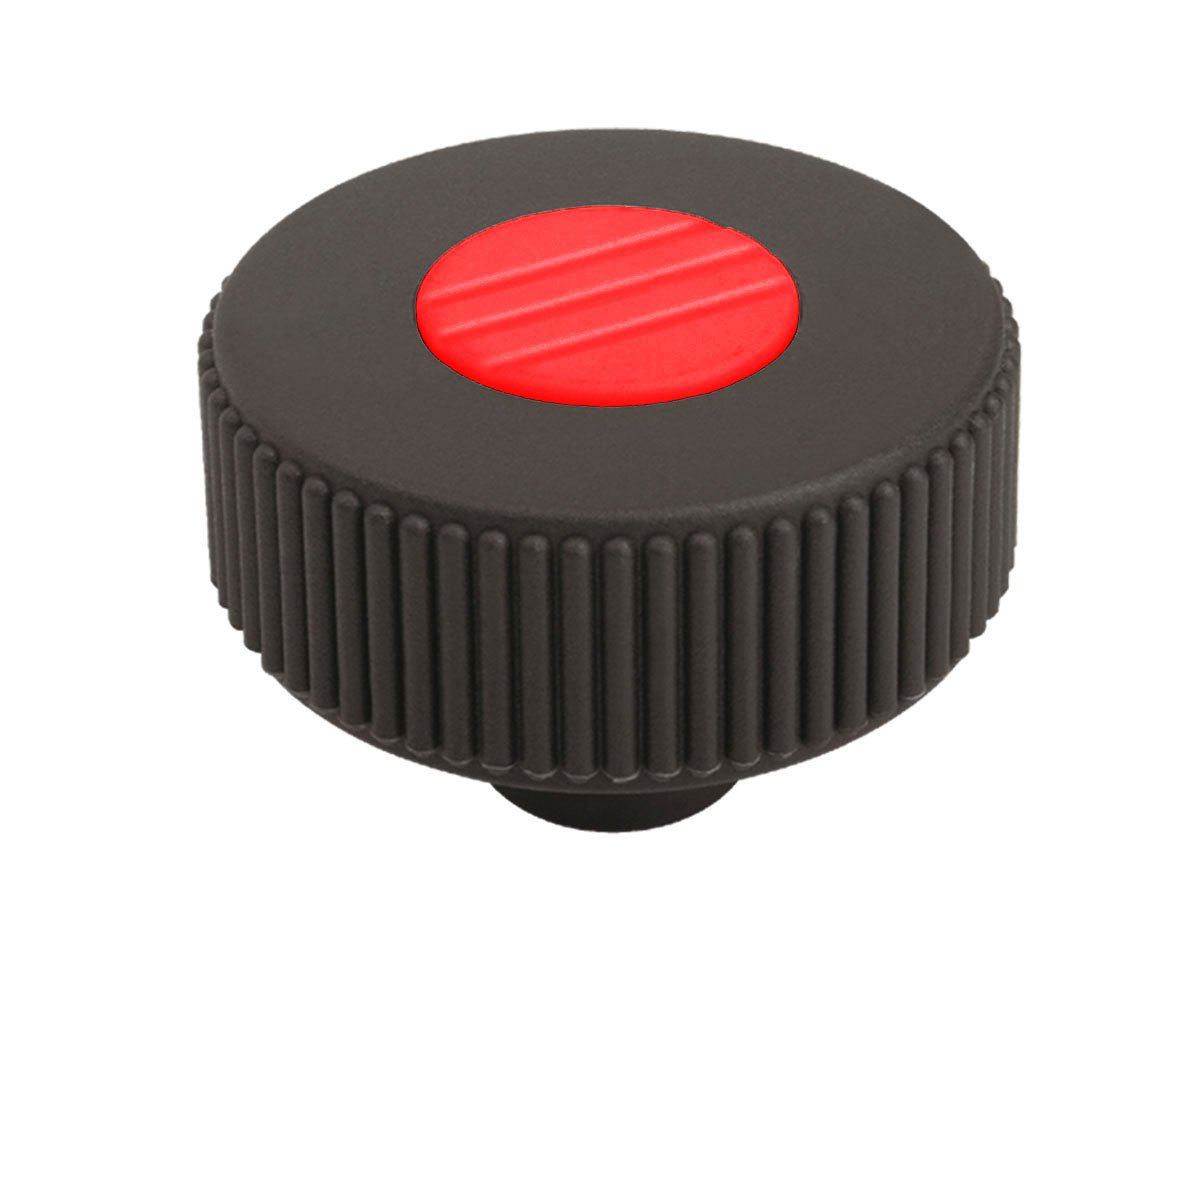 40 mm Diameter M5 Female Thread Pack of 10 31 mm Height Traffic Red Kipp 06266-21056 Thermoplastic Novo-Grip Tapped Through Hole Knurled Wheel Style K Steel Components Size 1 Metric